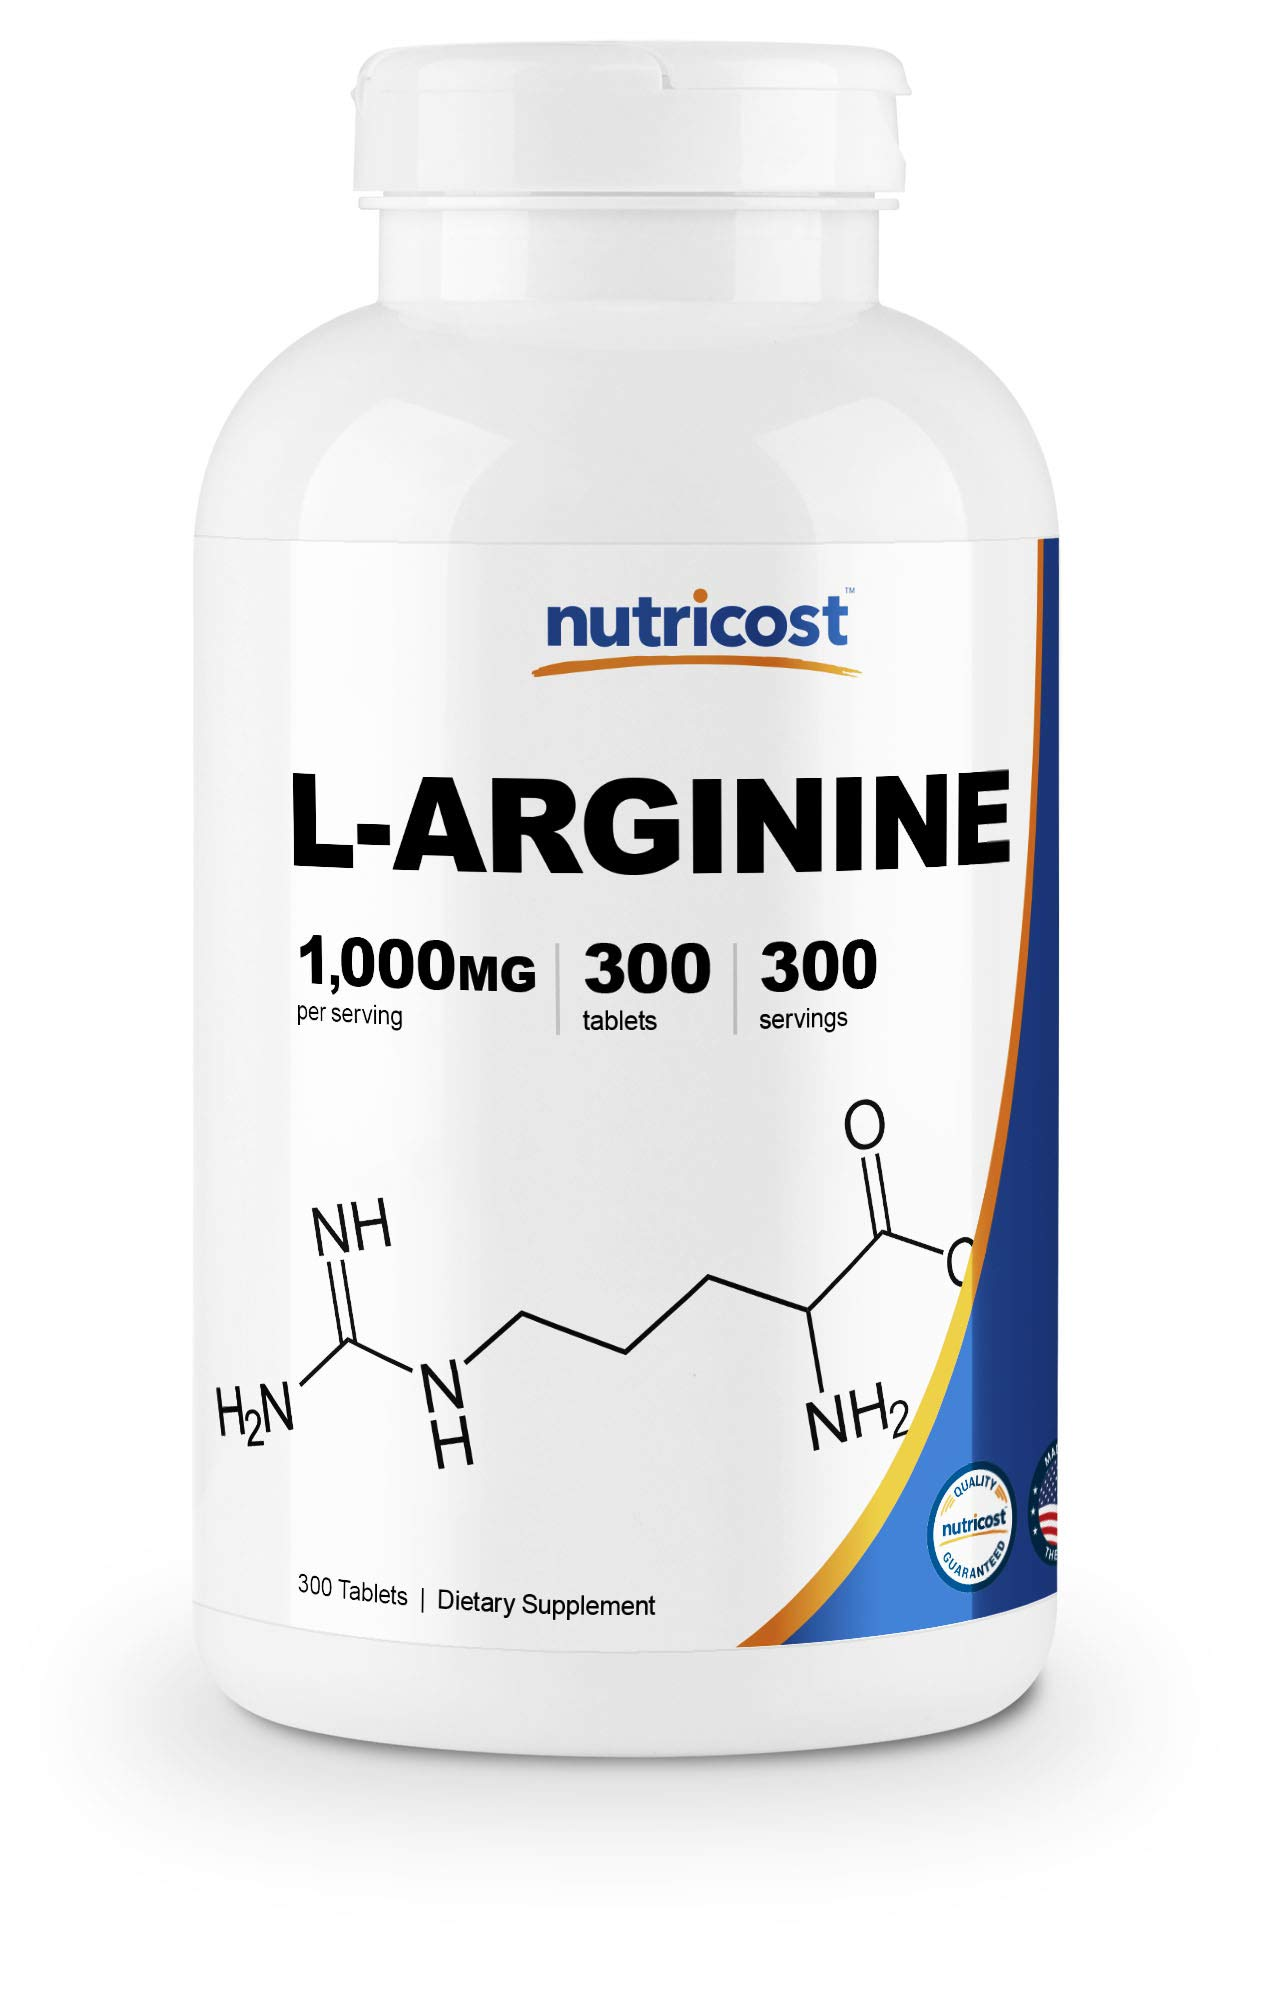 Nutricost L-Arginine 1000mg, Amino Acid Tablets (300 Tablets) by Nutricost